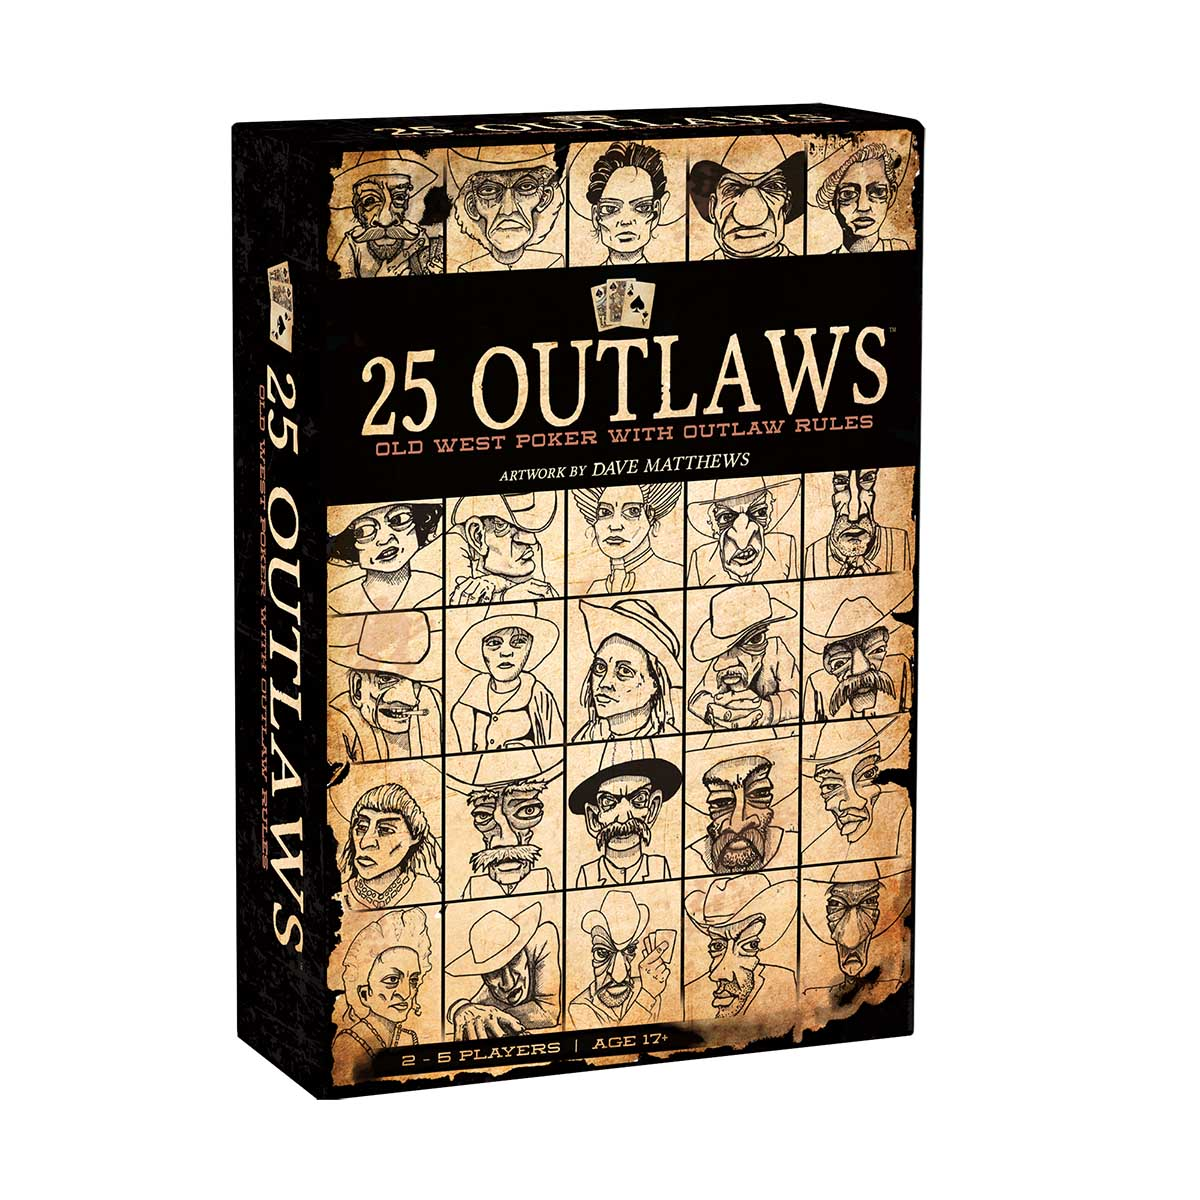 25 Outlaws - Scratch and Dent